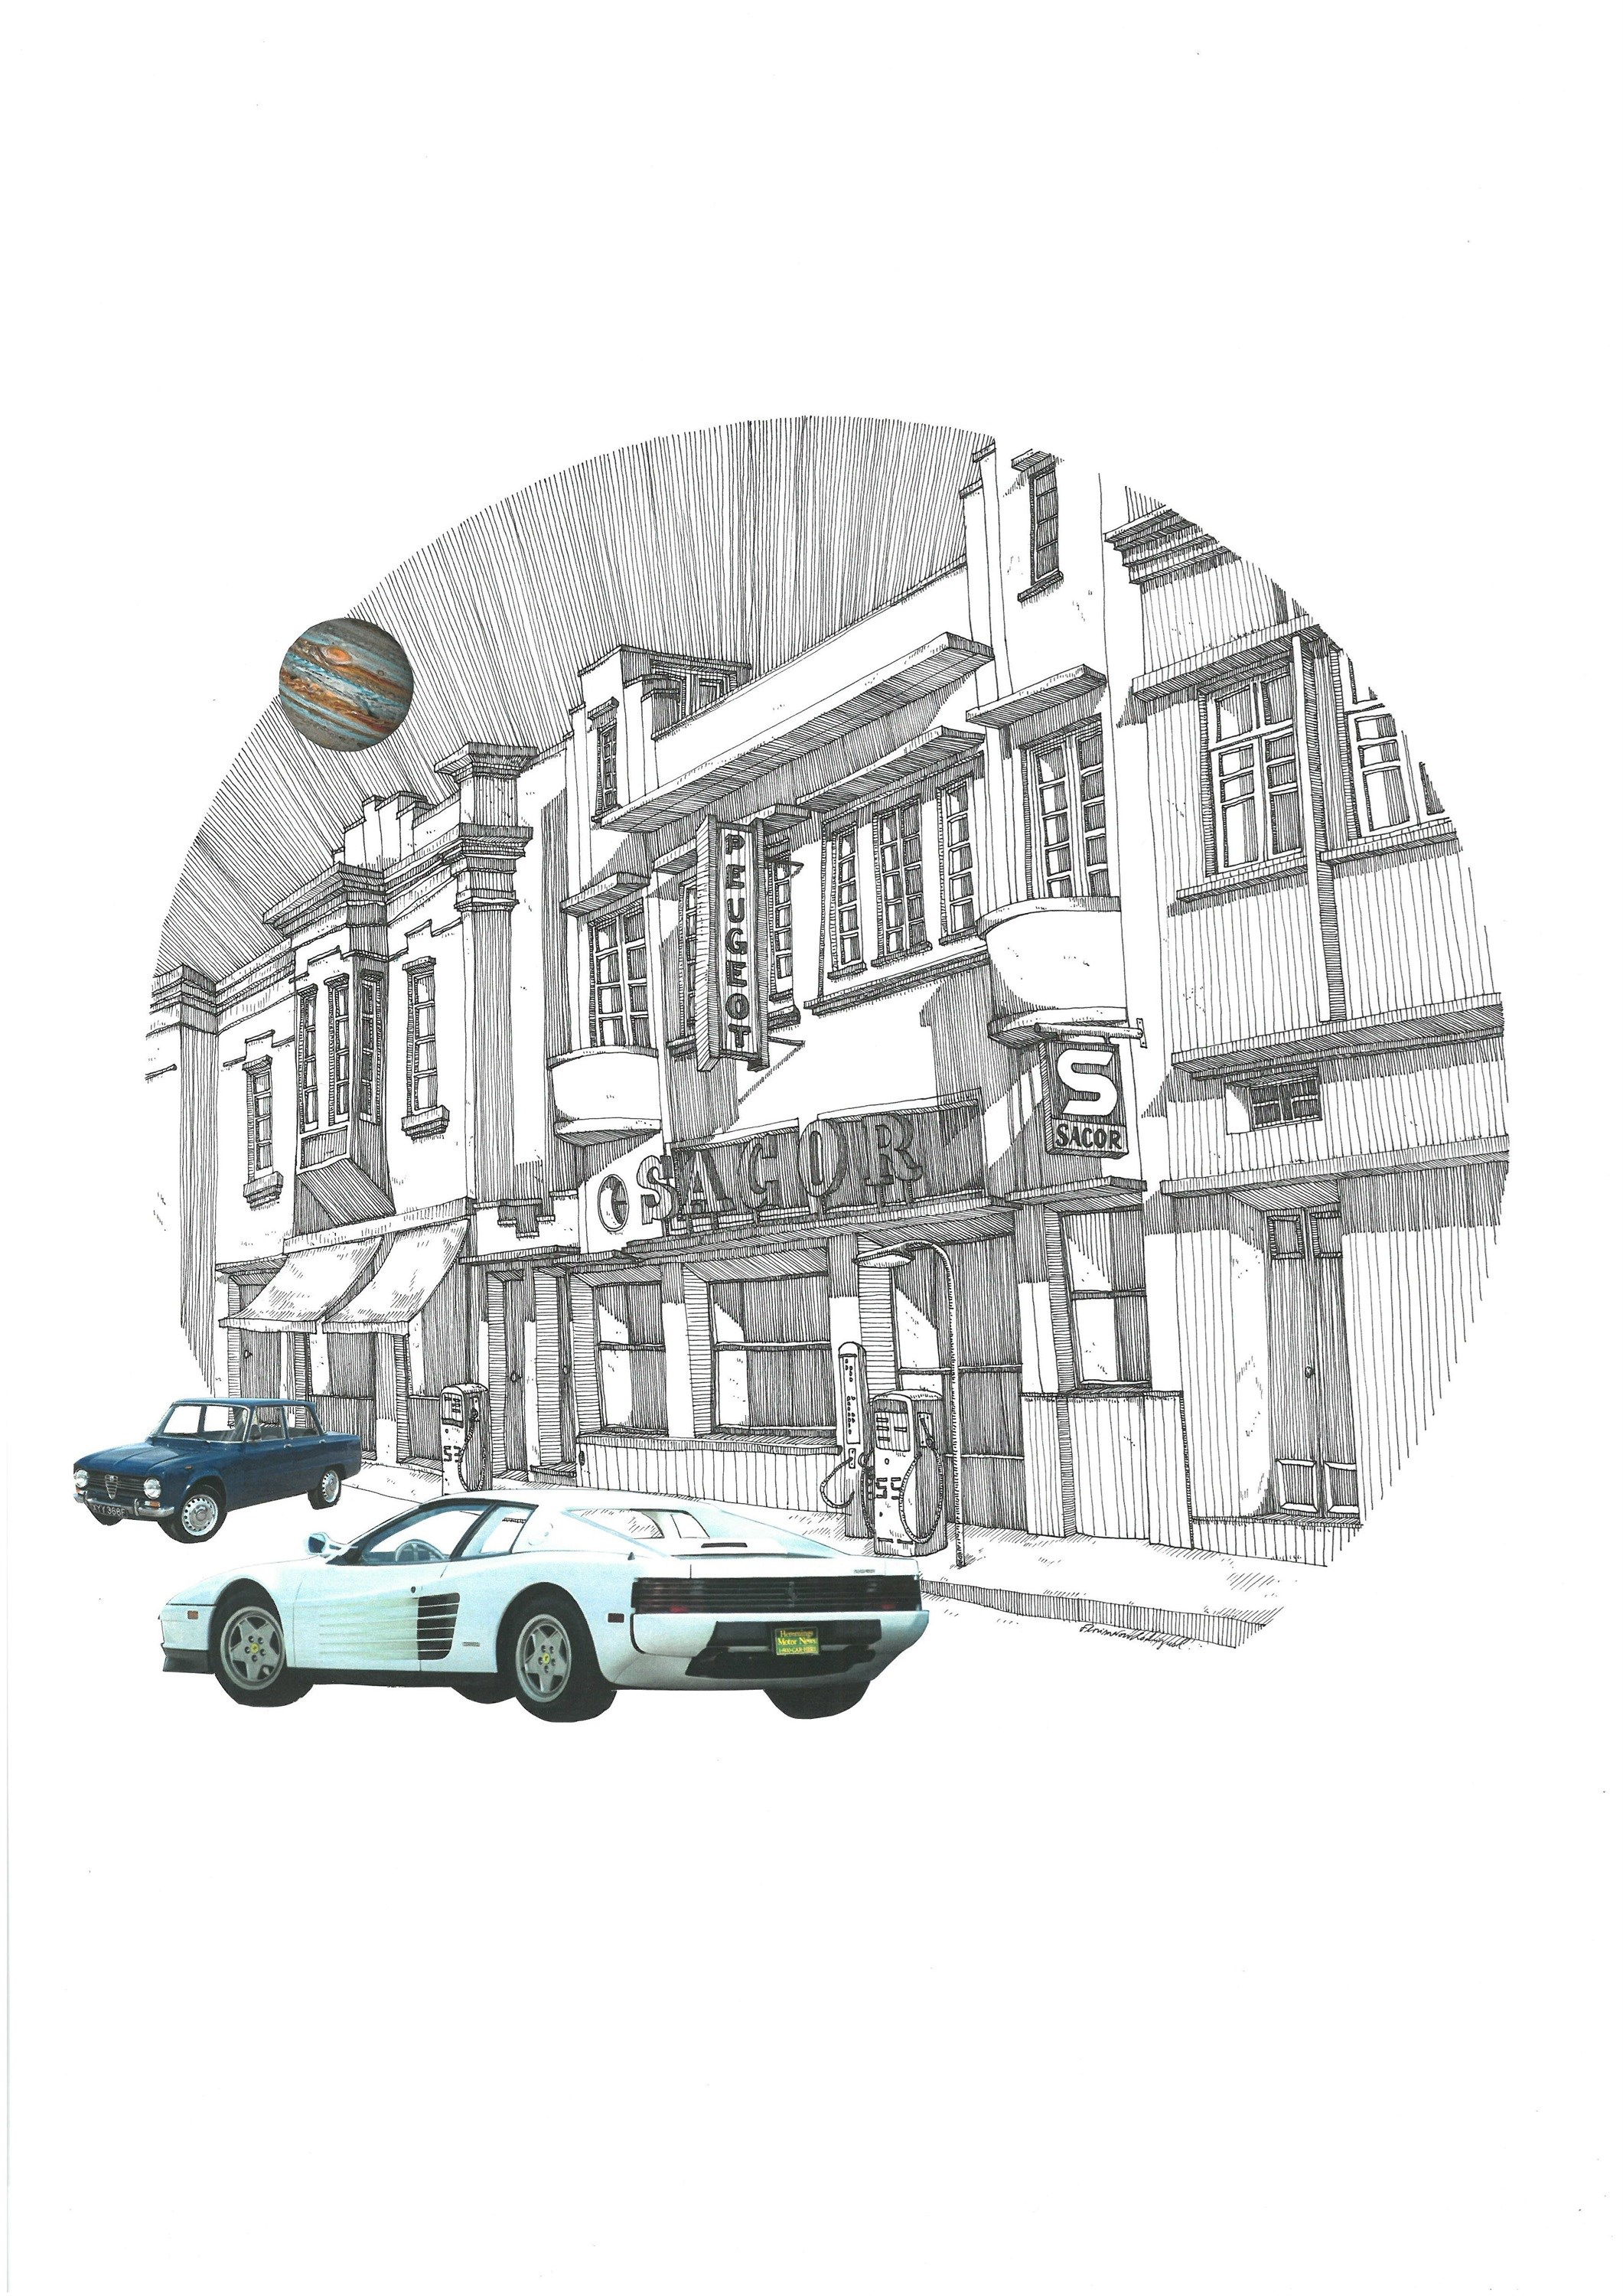 Ferrari Testarossa, original Architecture Collage Drawing and Illustration by Florisa Novo Rodrigues